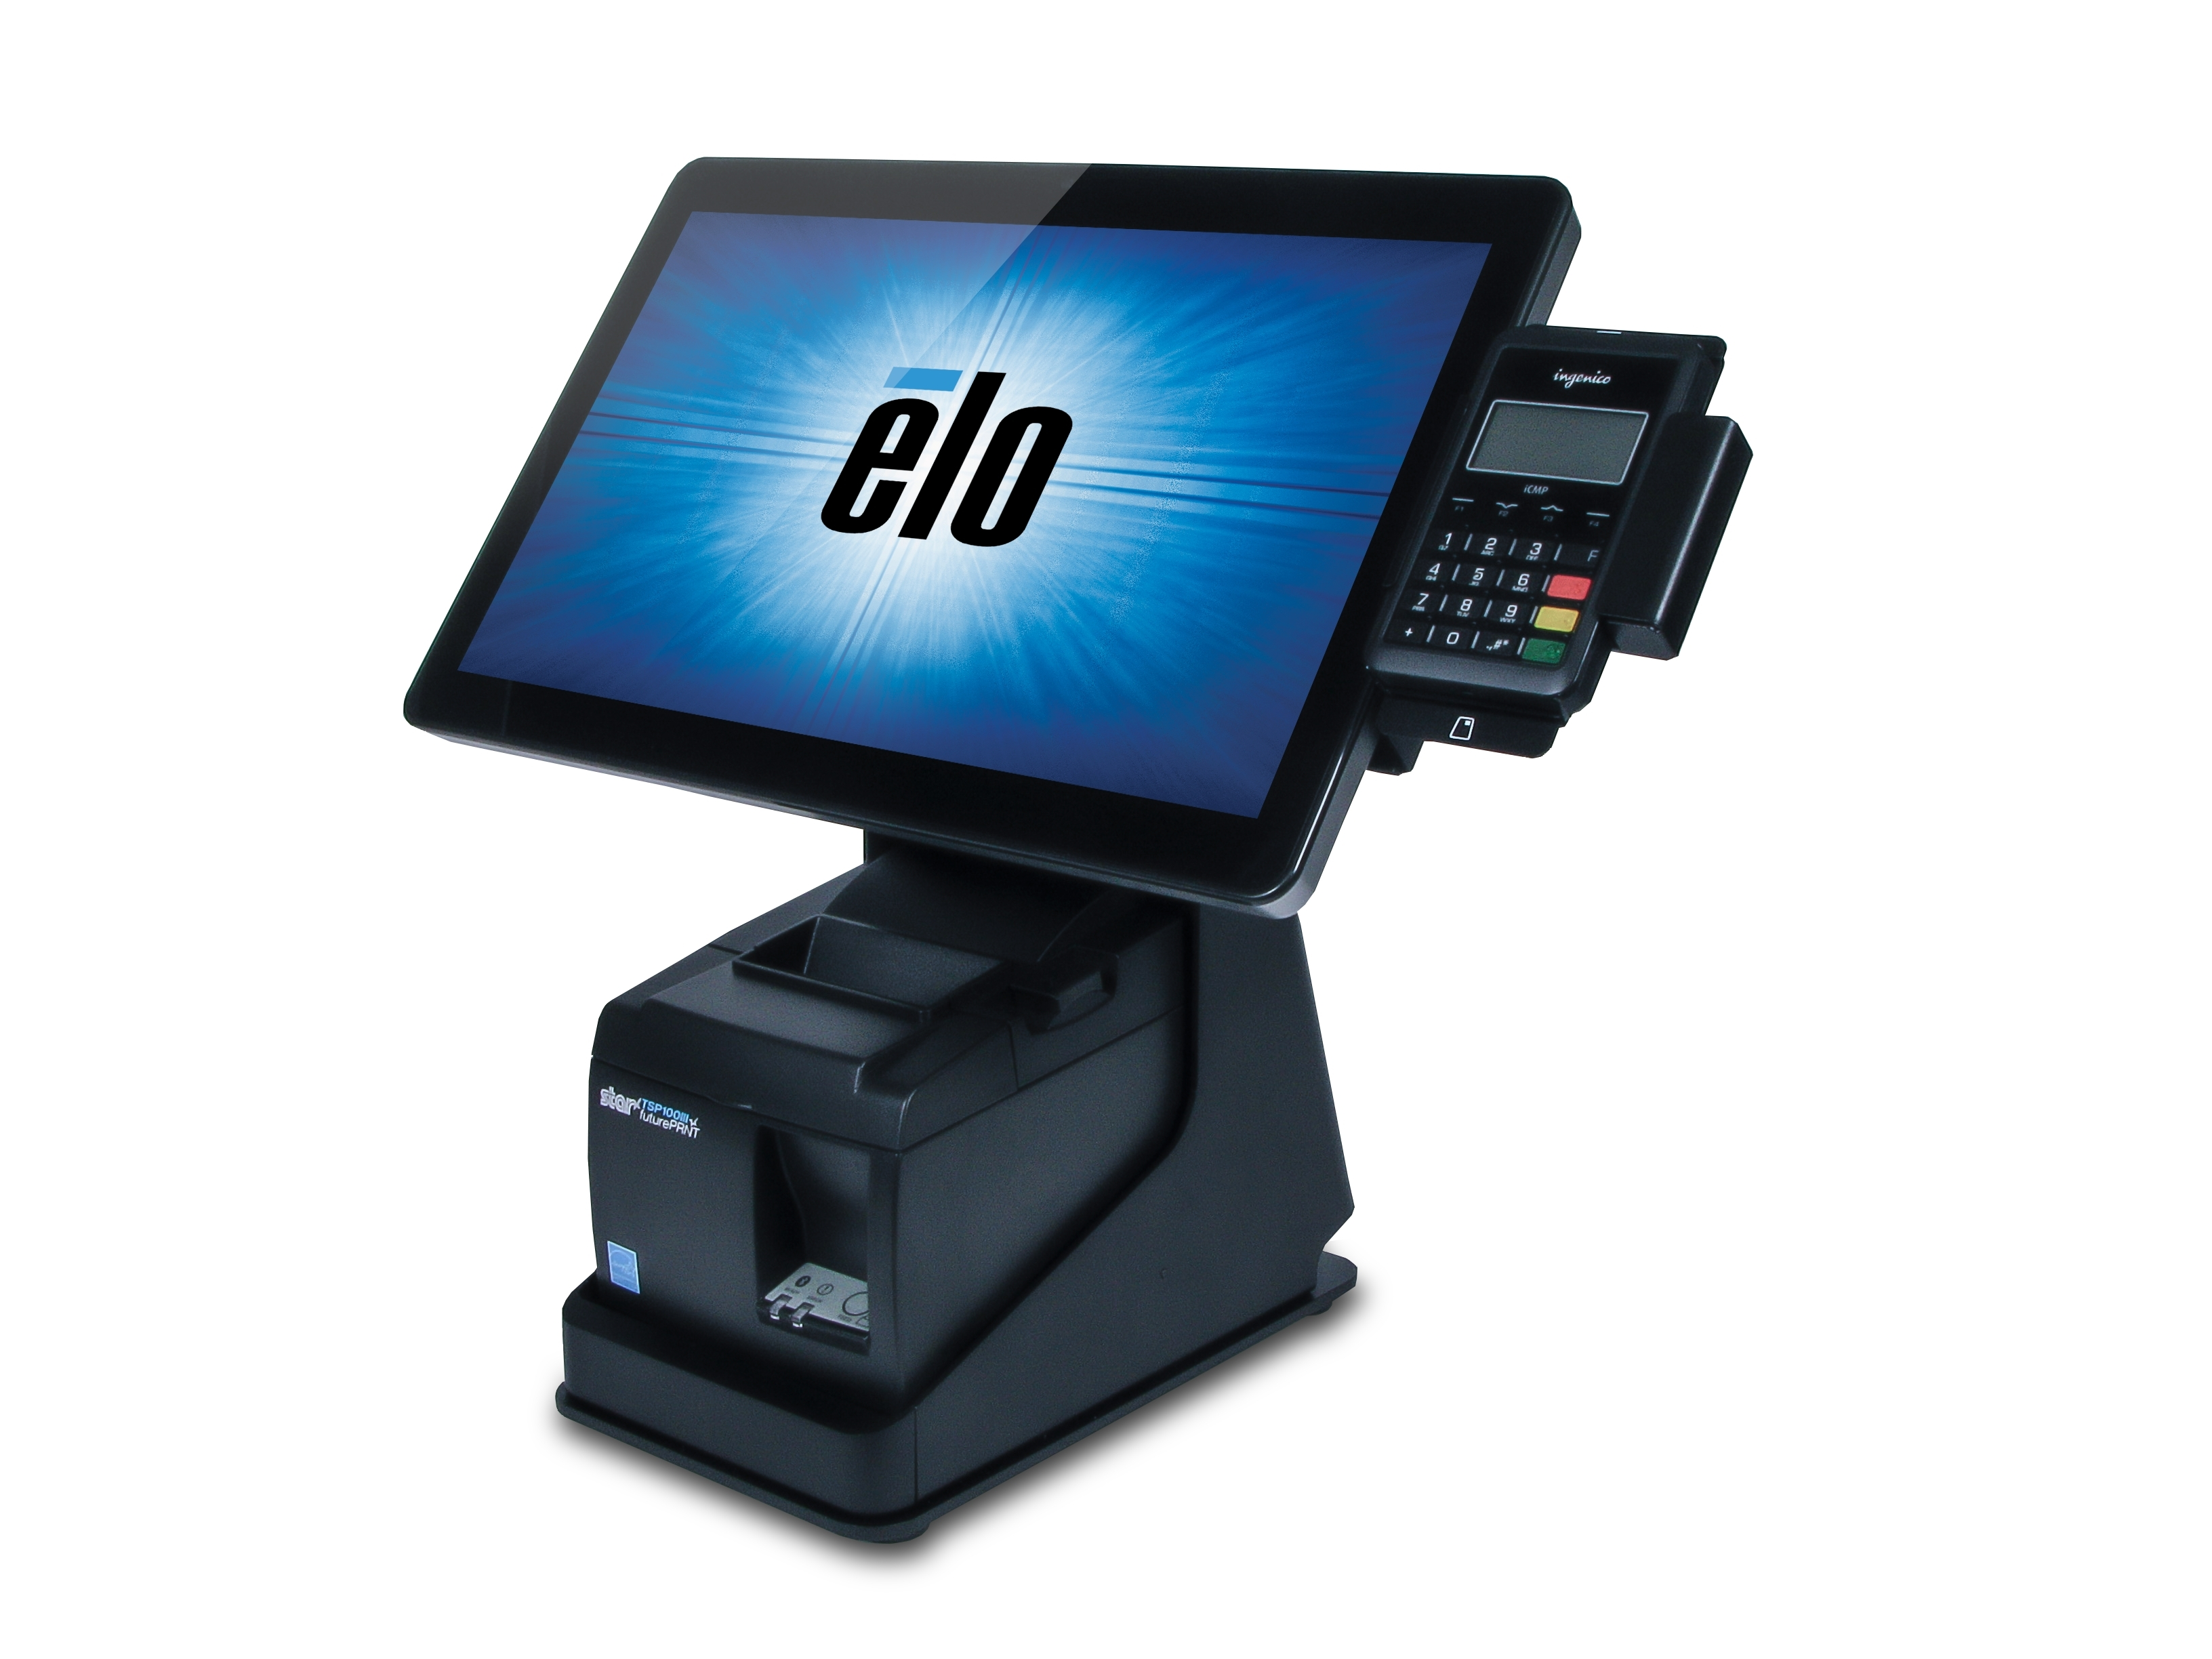 New Elo mPOS System Flips Between POS and Self-Order Kiosk ...